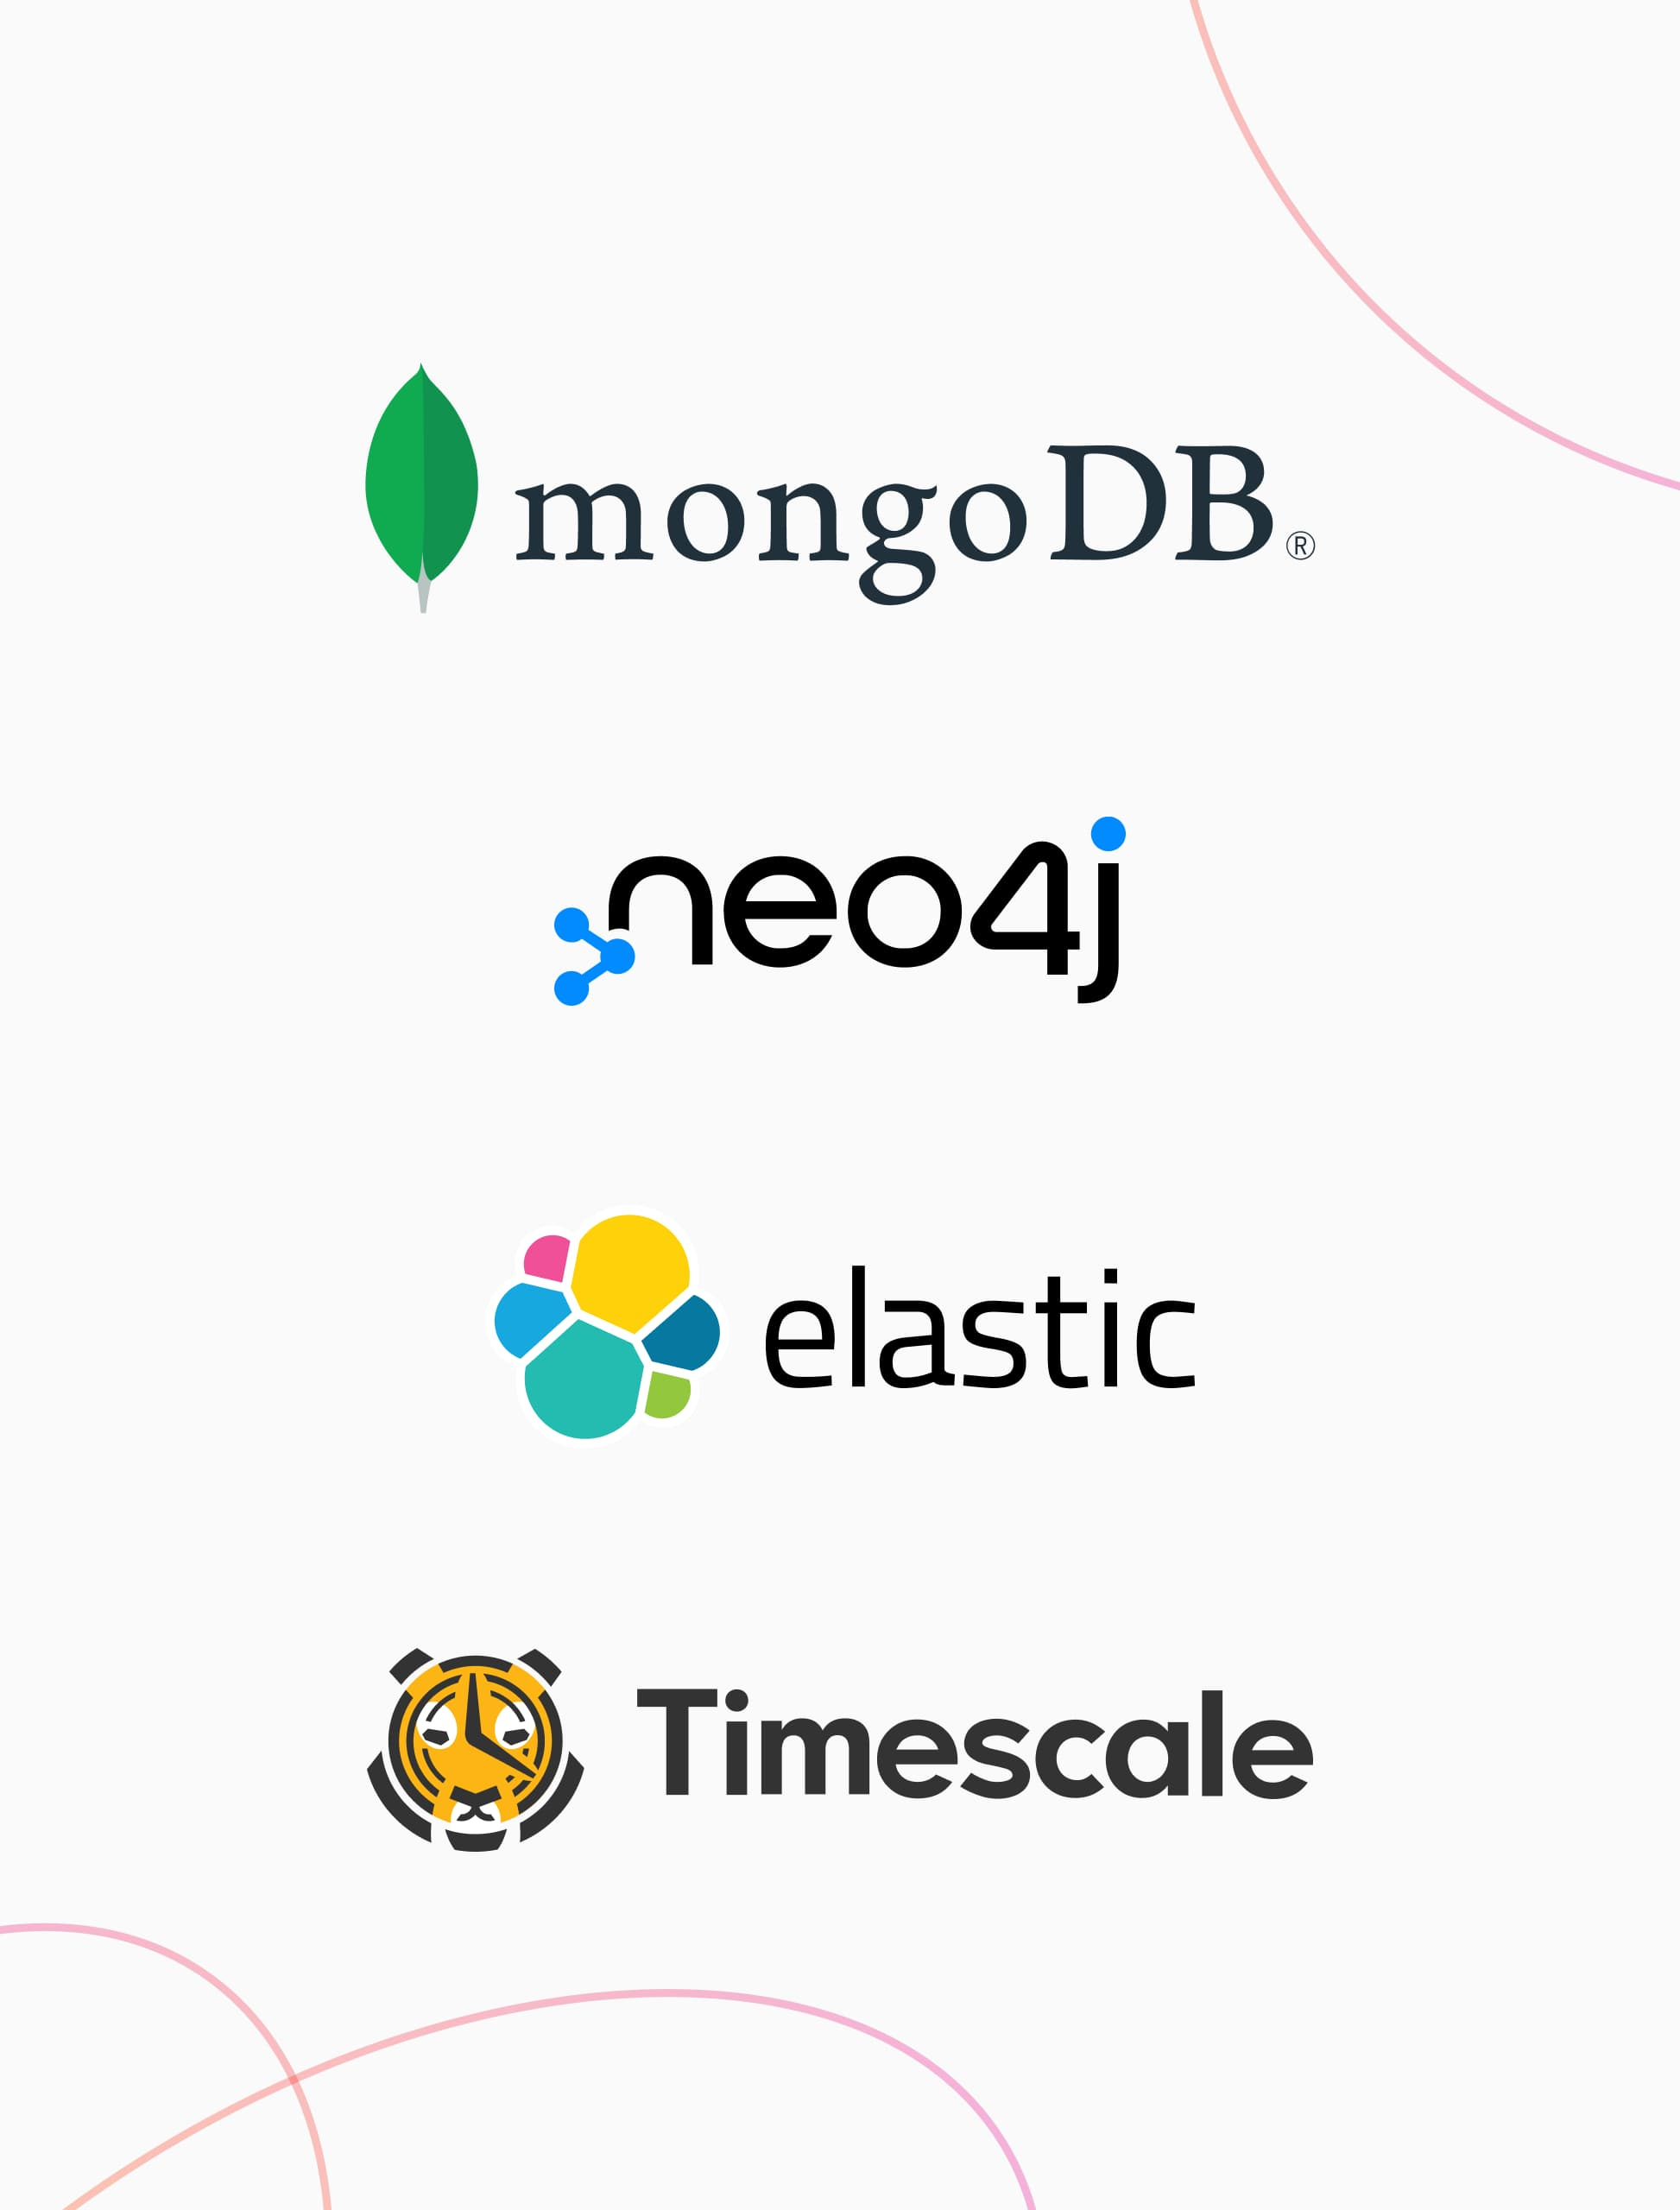 4 logos inlcuding mongodb, neo4j, elastic search, and timescale